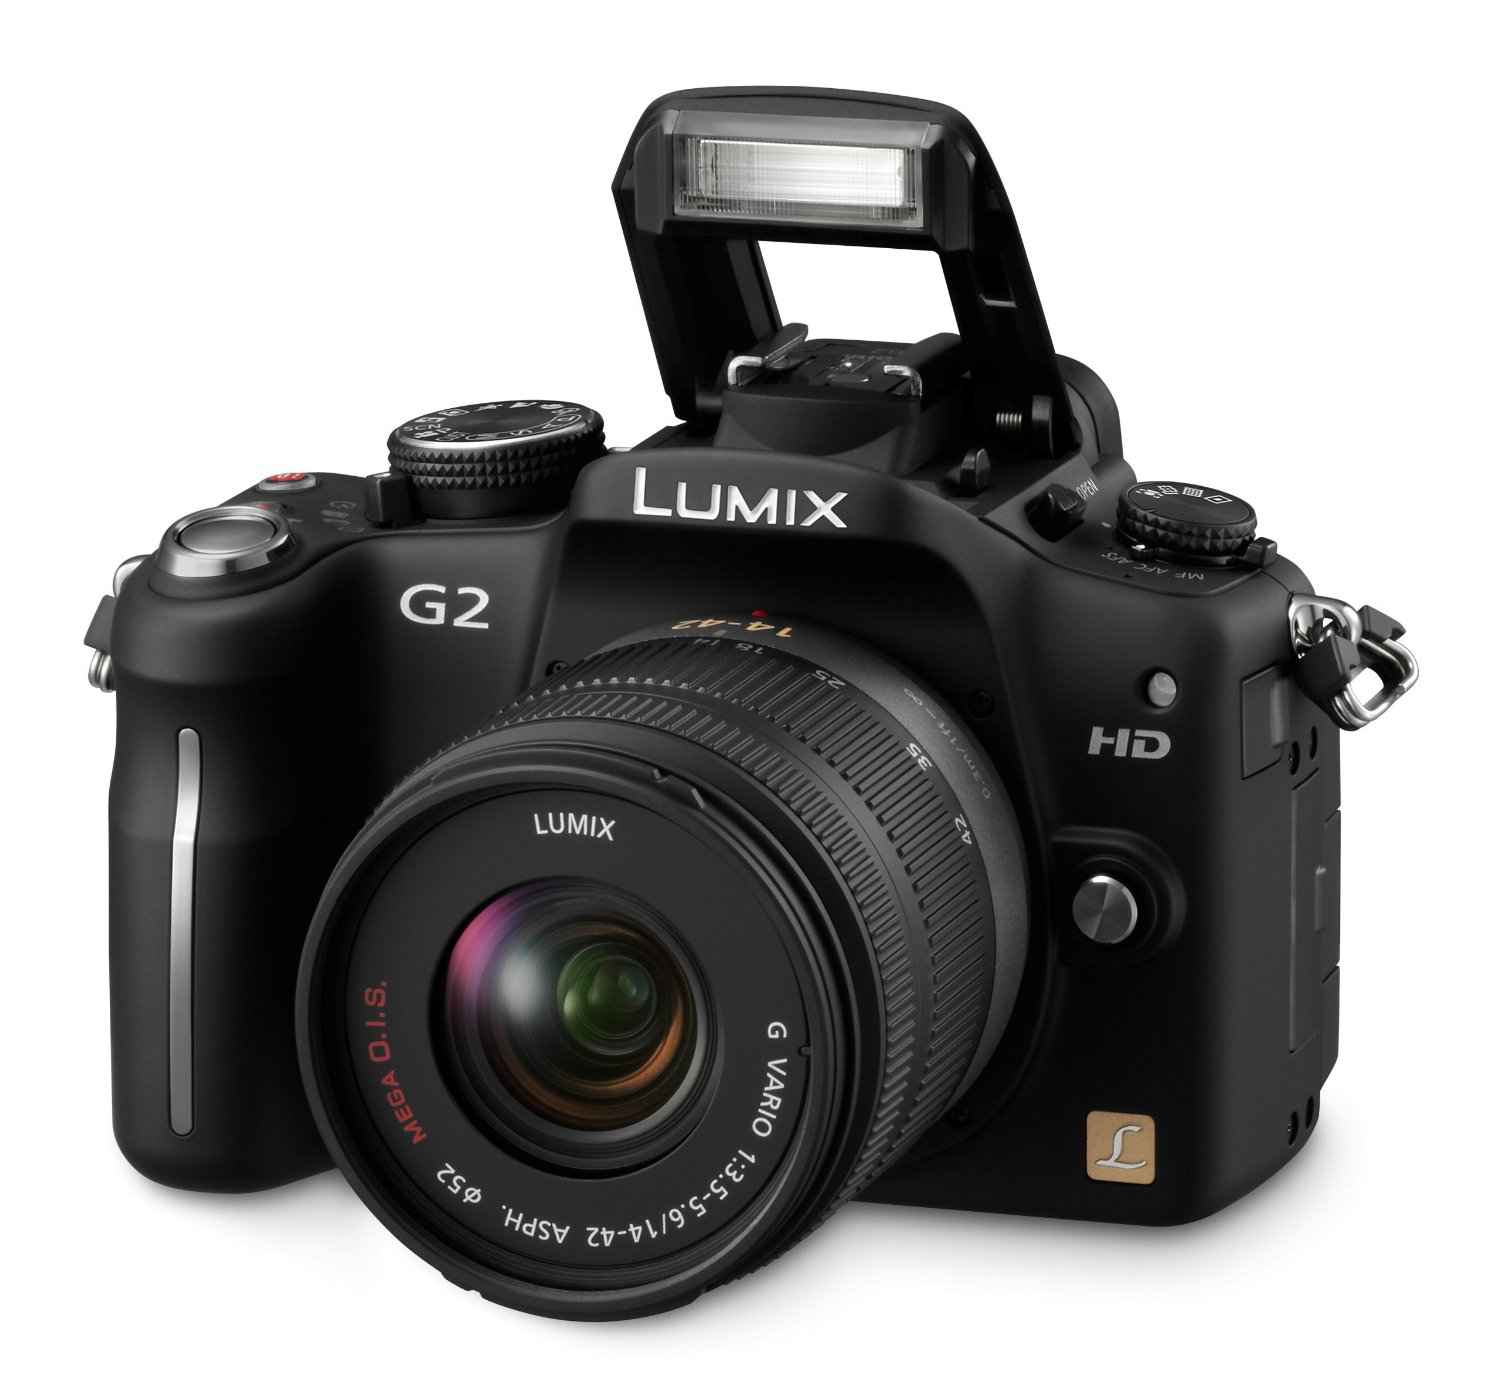 Panasonic Lumix DMC-G2 12.1 MP Live MOS Mirrorless Digital Camera